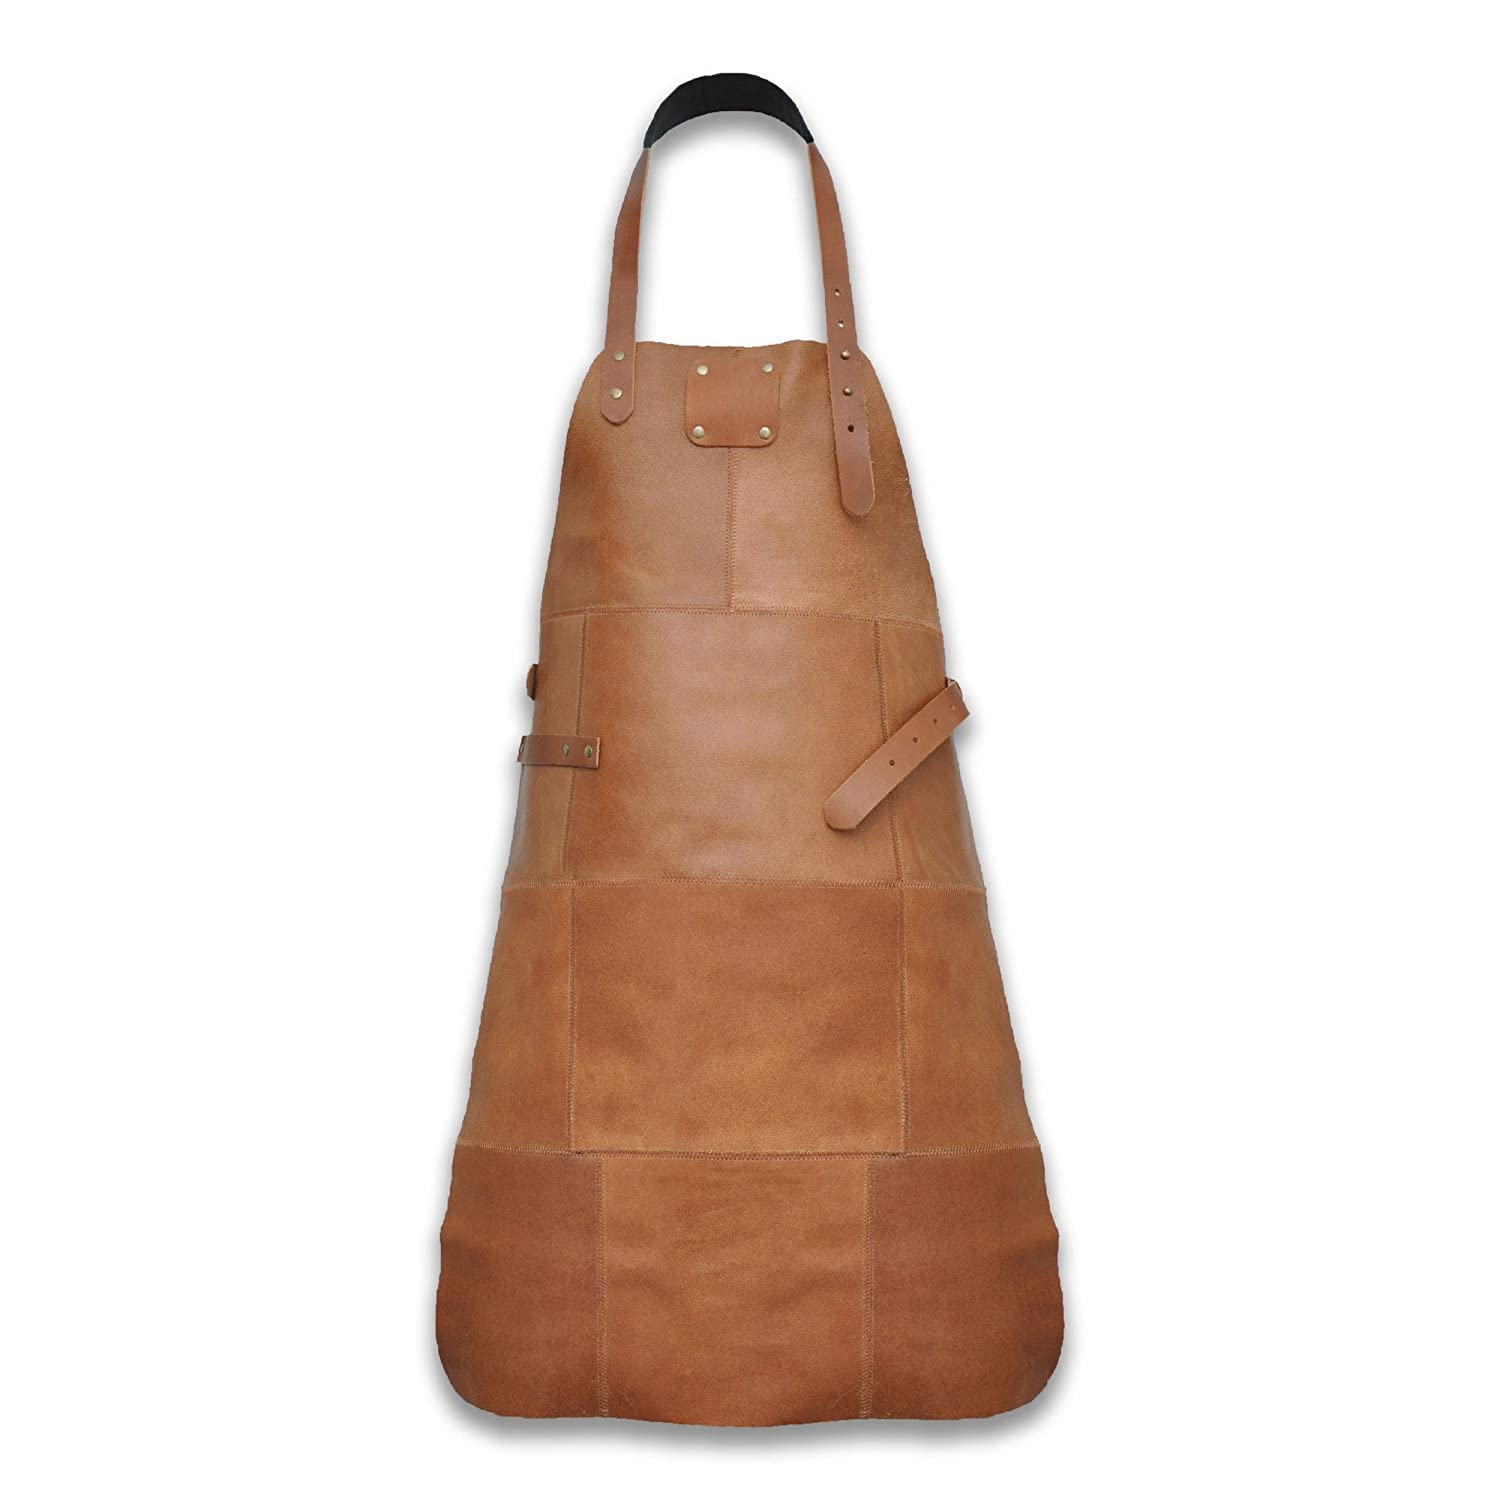 Five Grain Leather BBQ Apron Made From 100% Genuine High Quality Leather Adjustable Length 85cm, Cognac